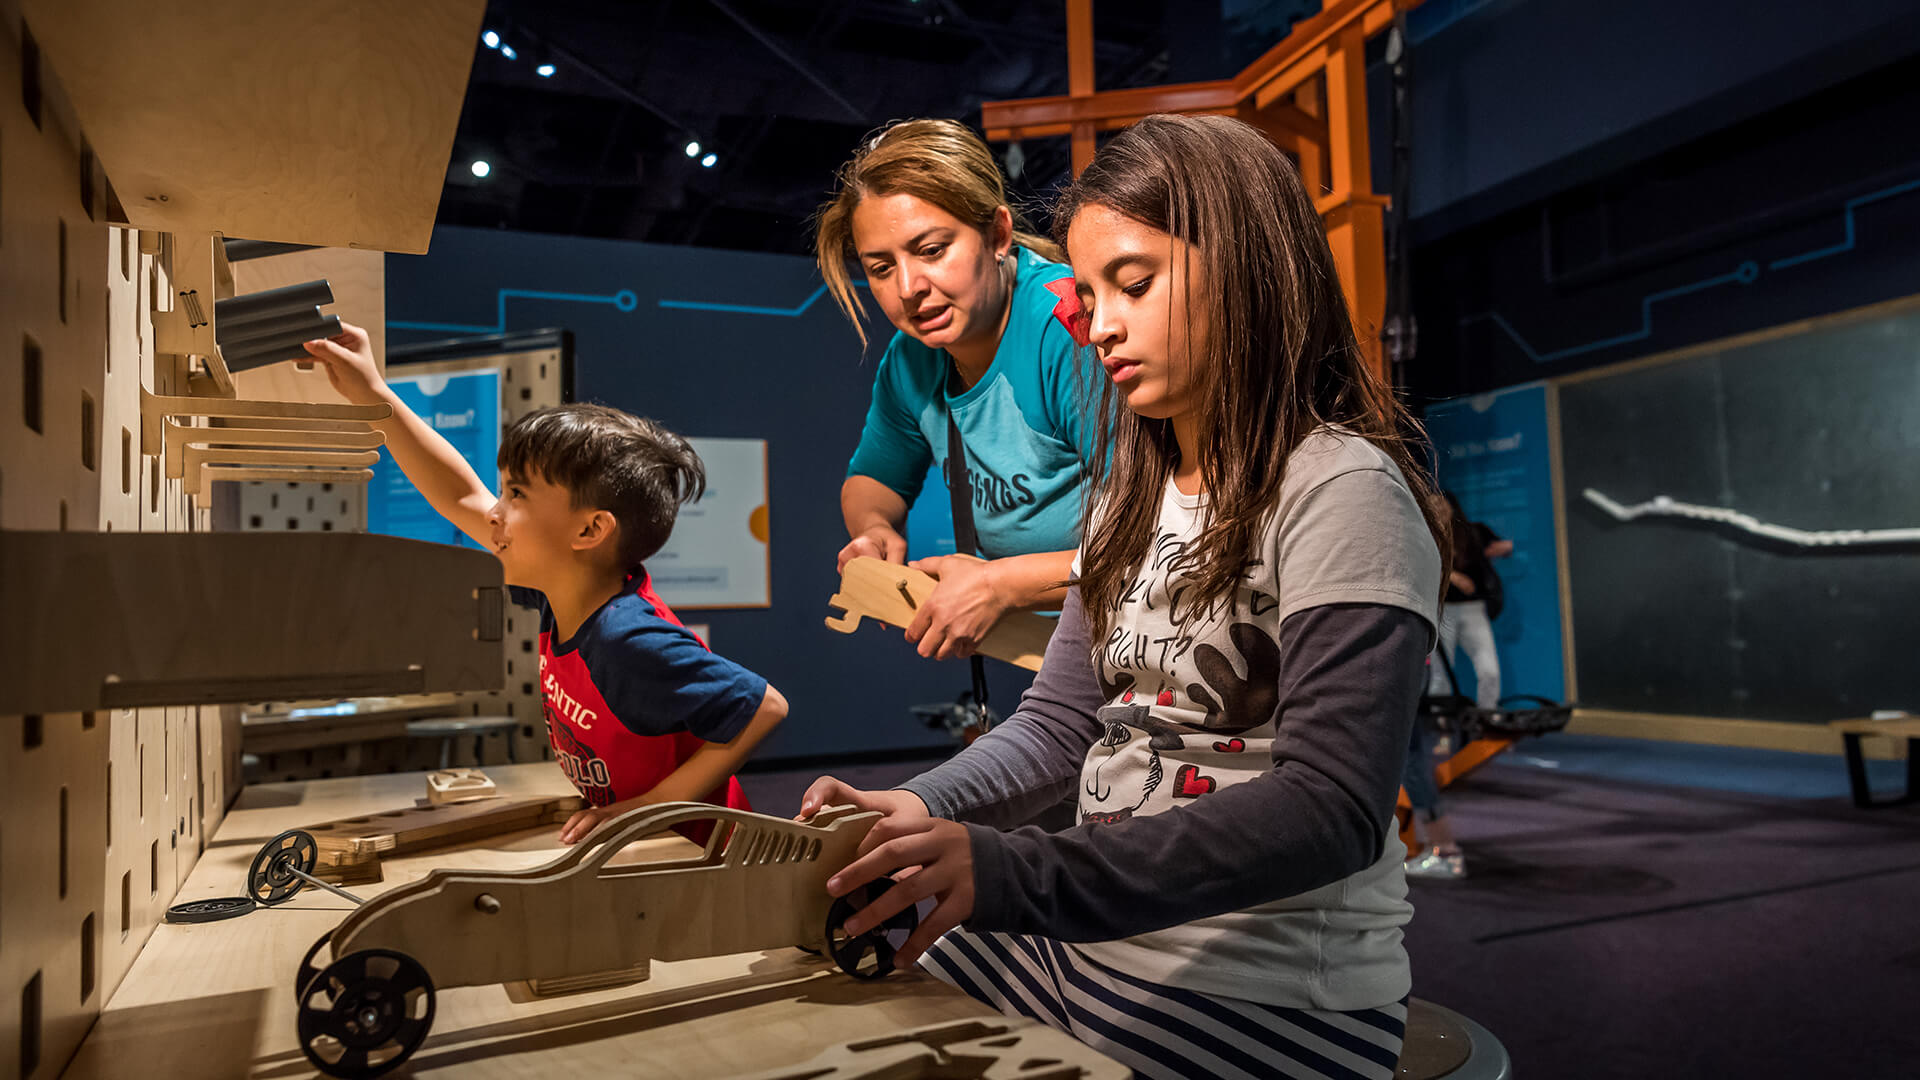 A family builds model cars in the Kinetic Zone exhibit.